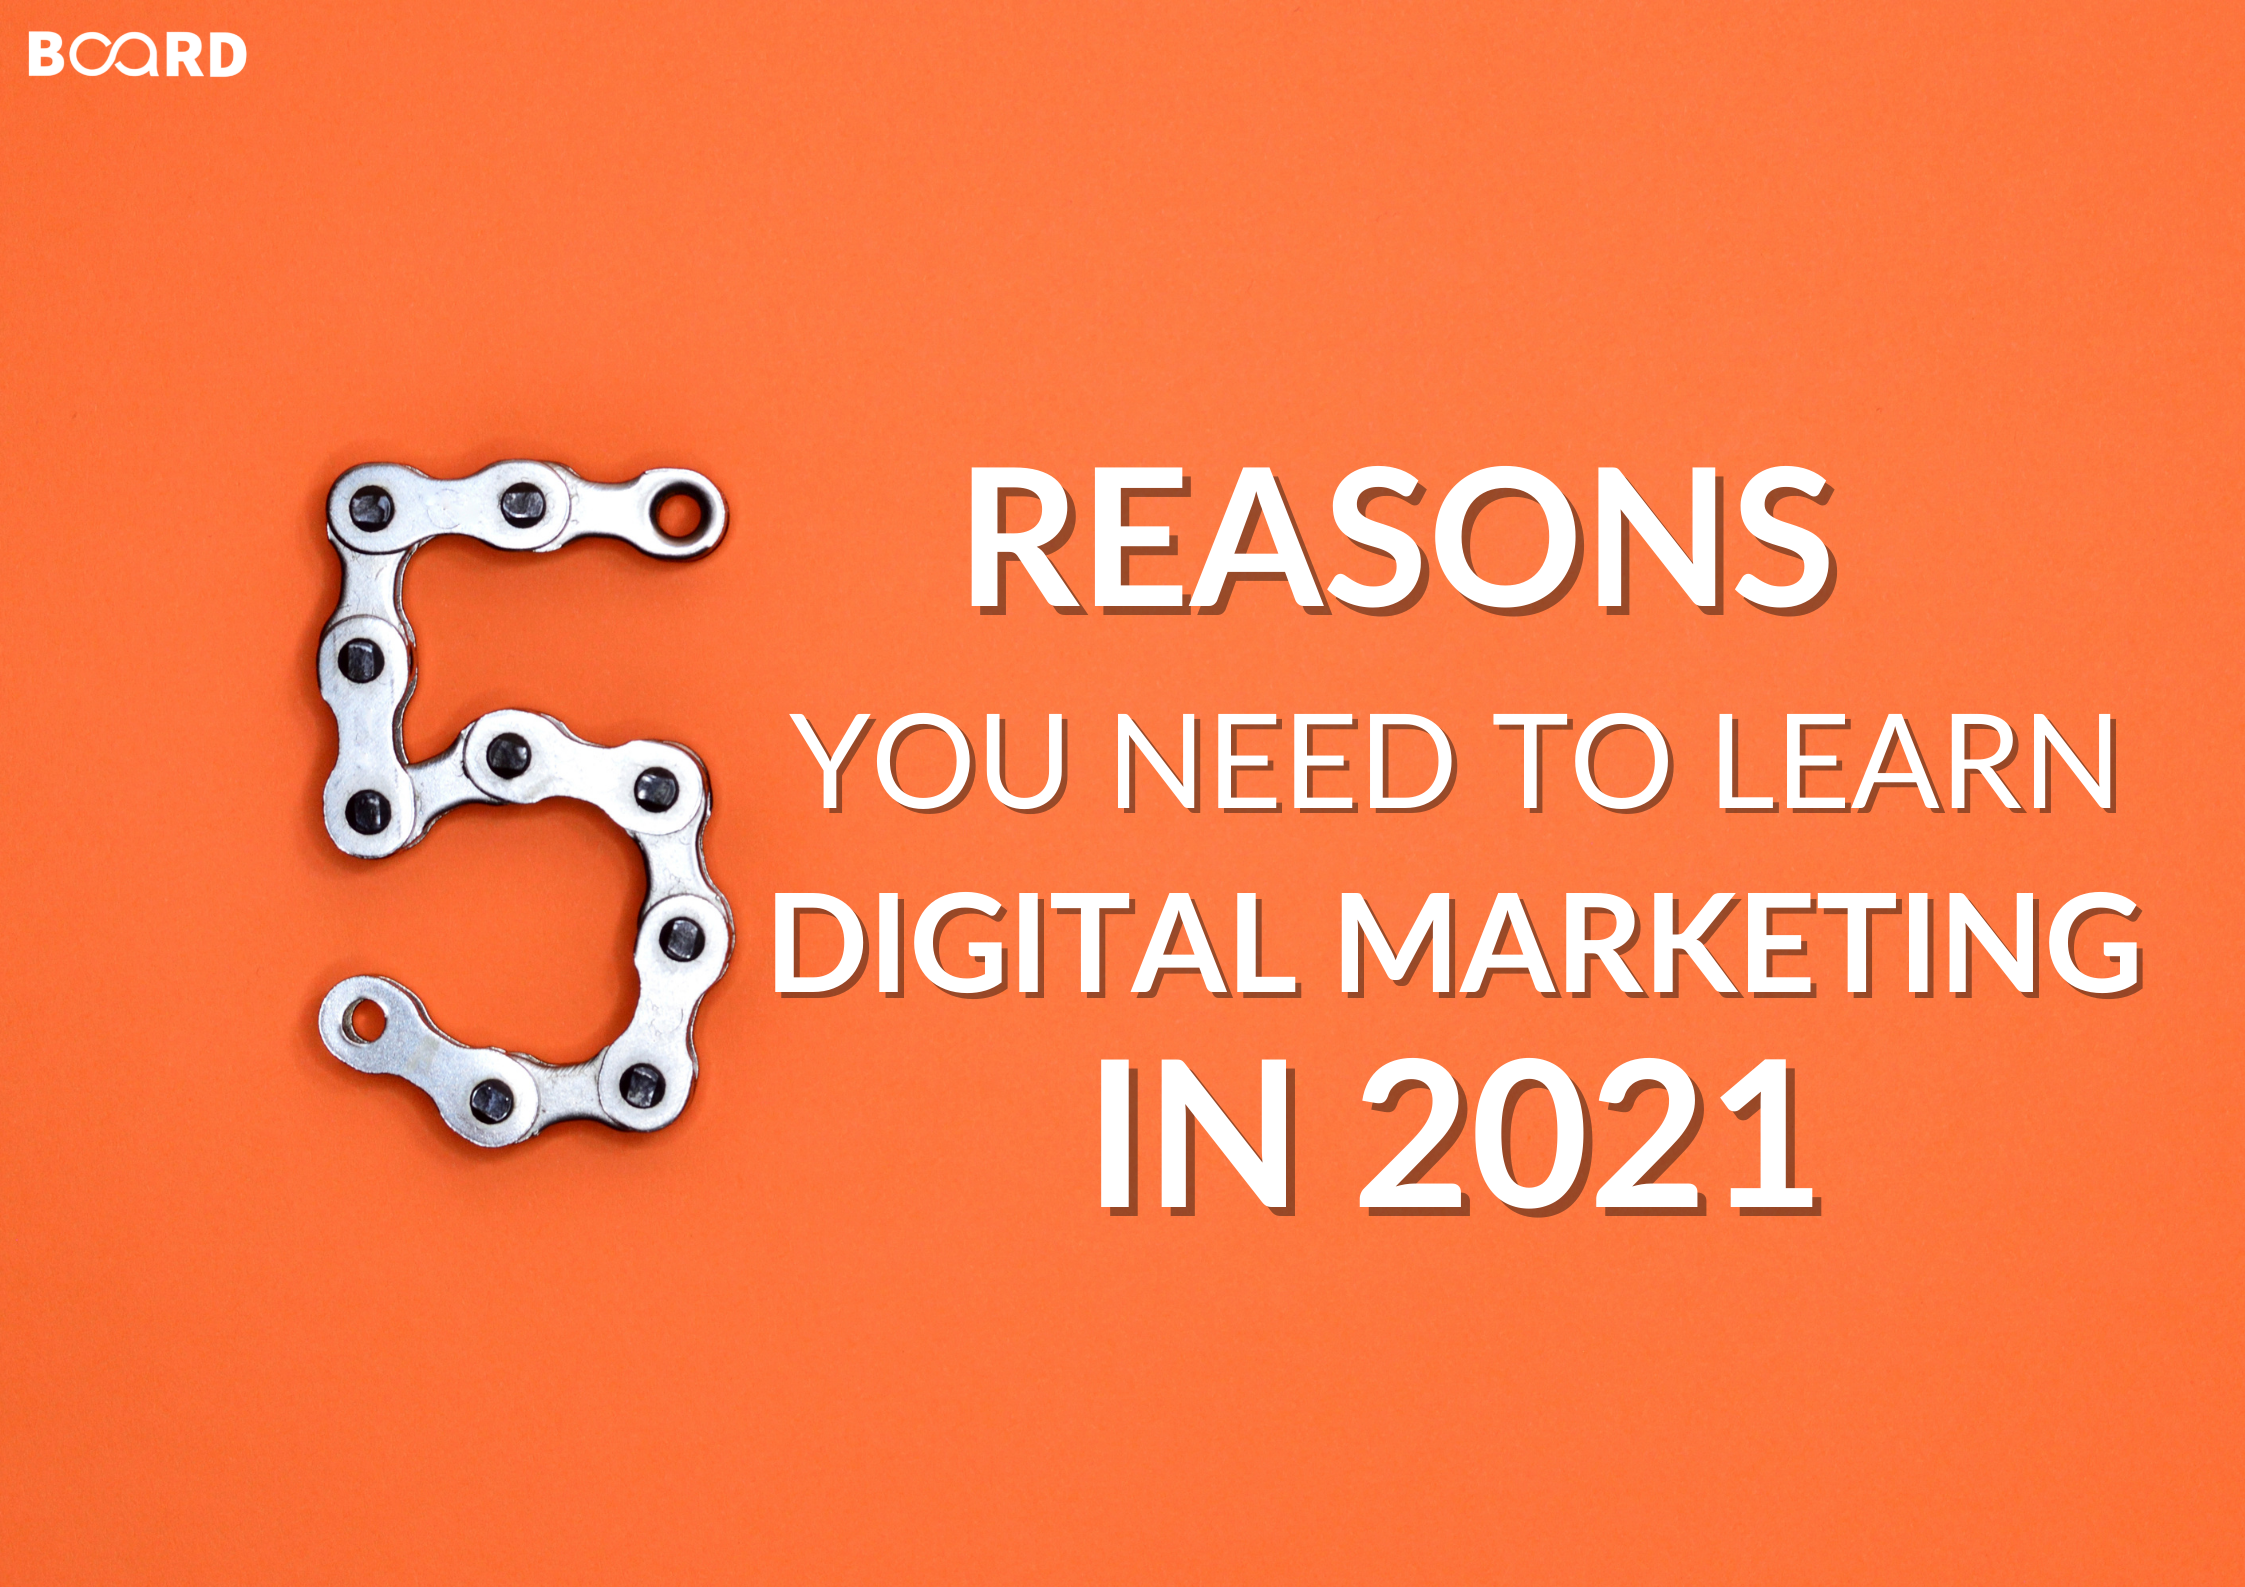 5 Reasons You Need To Learn Digital Marketing In 2021